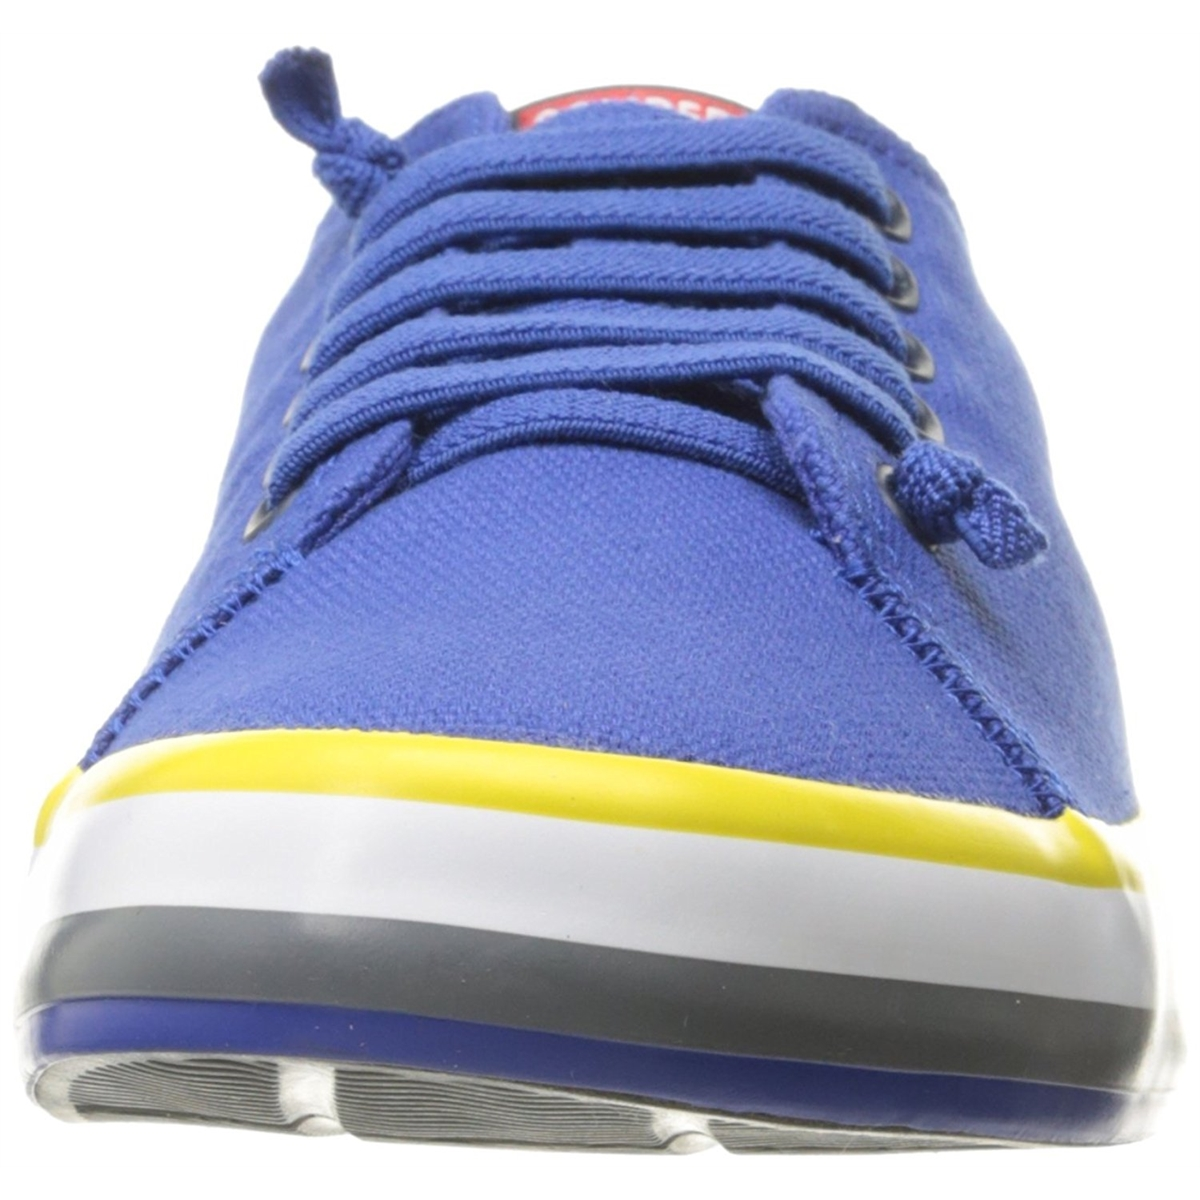 Camper Men Andratx Fashion Sneakers Economical, stylish, and eye-catching shoes